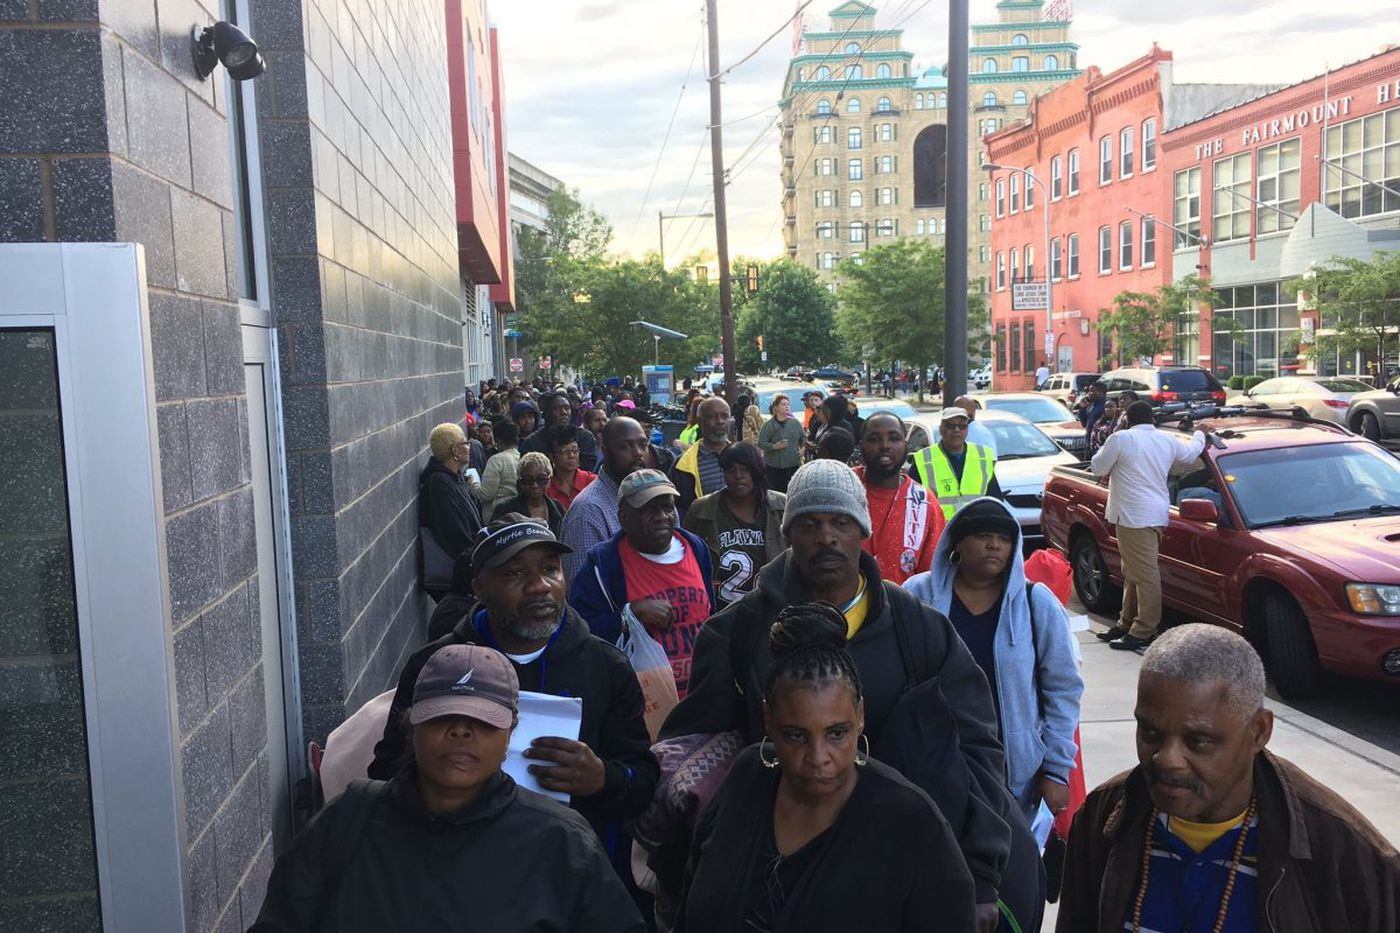 On Fairmount Avenue, hundreds line up for a shot at a home